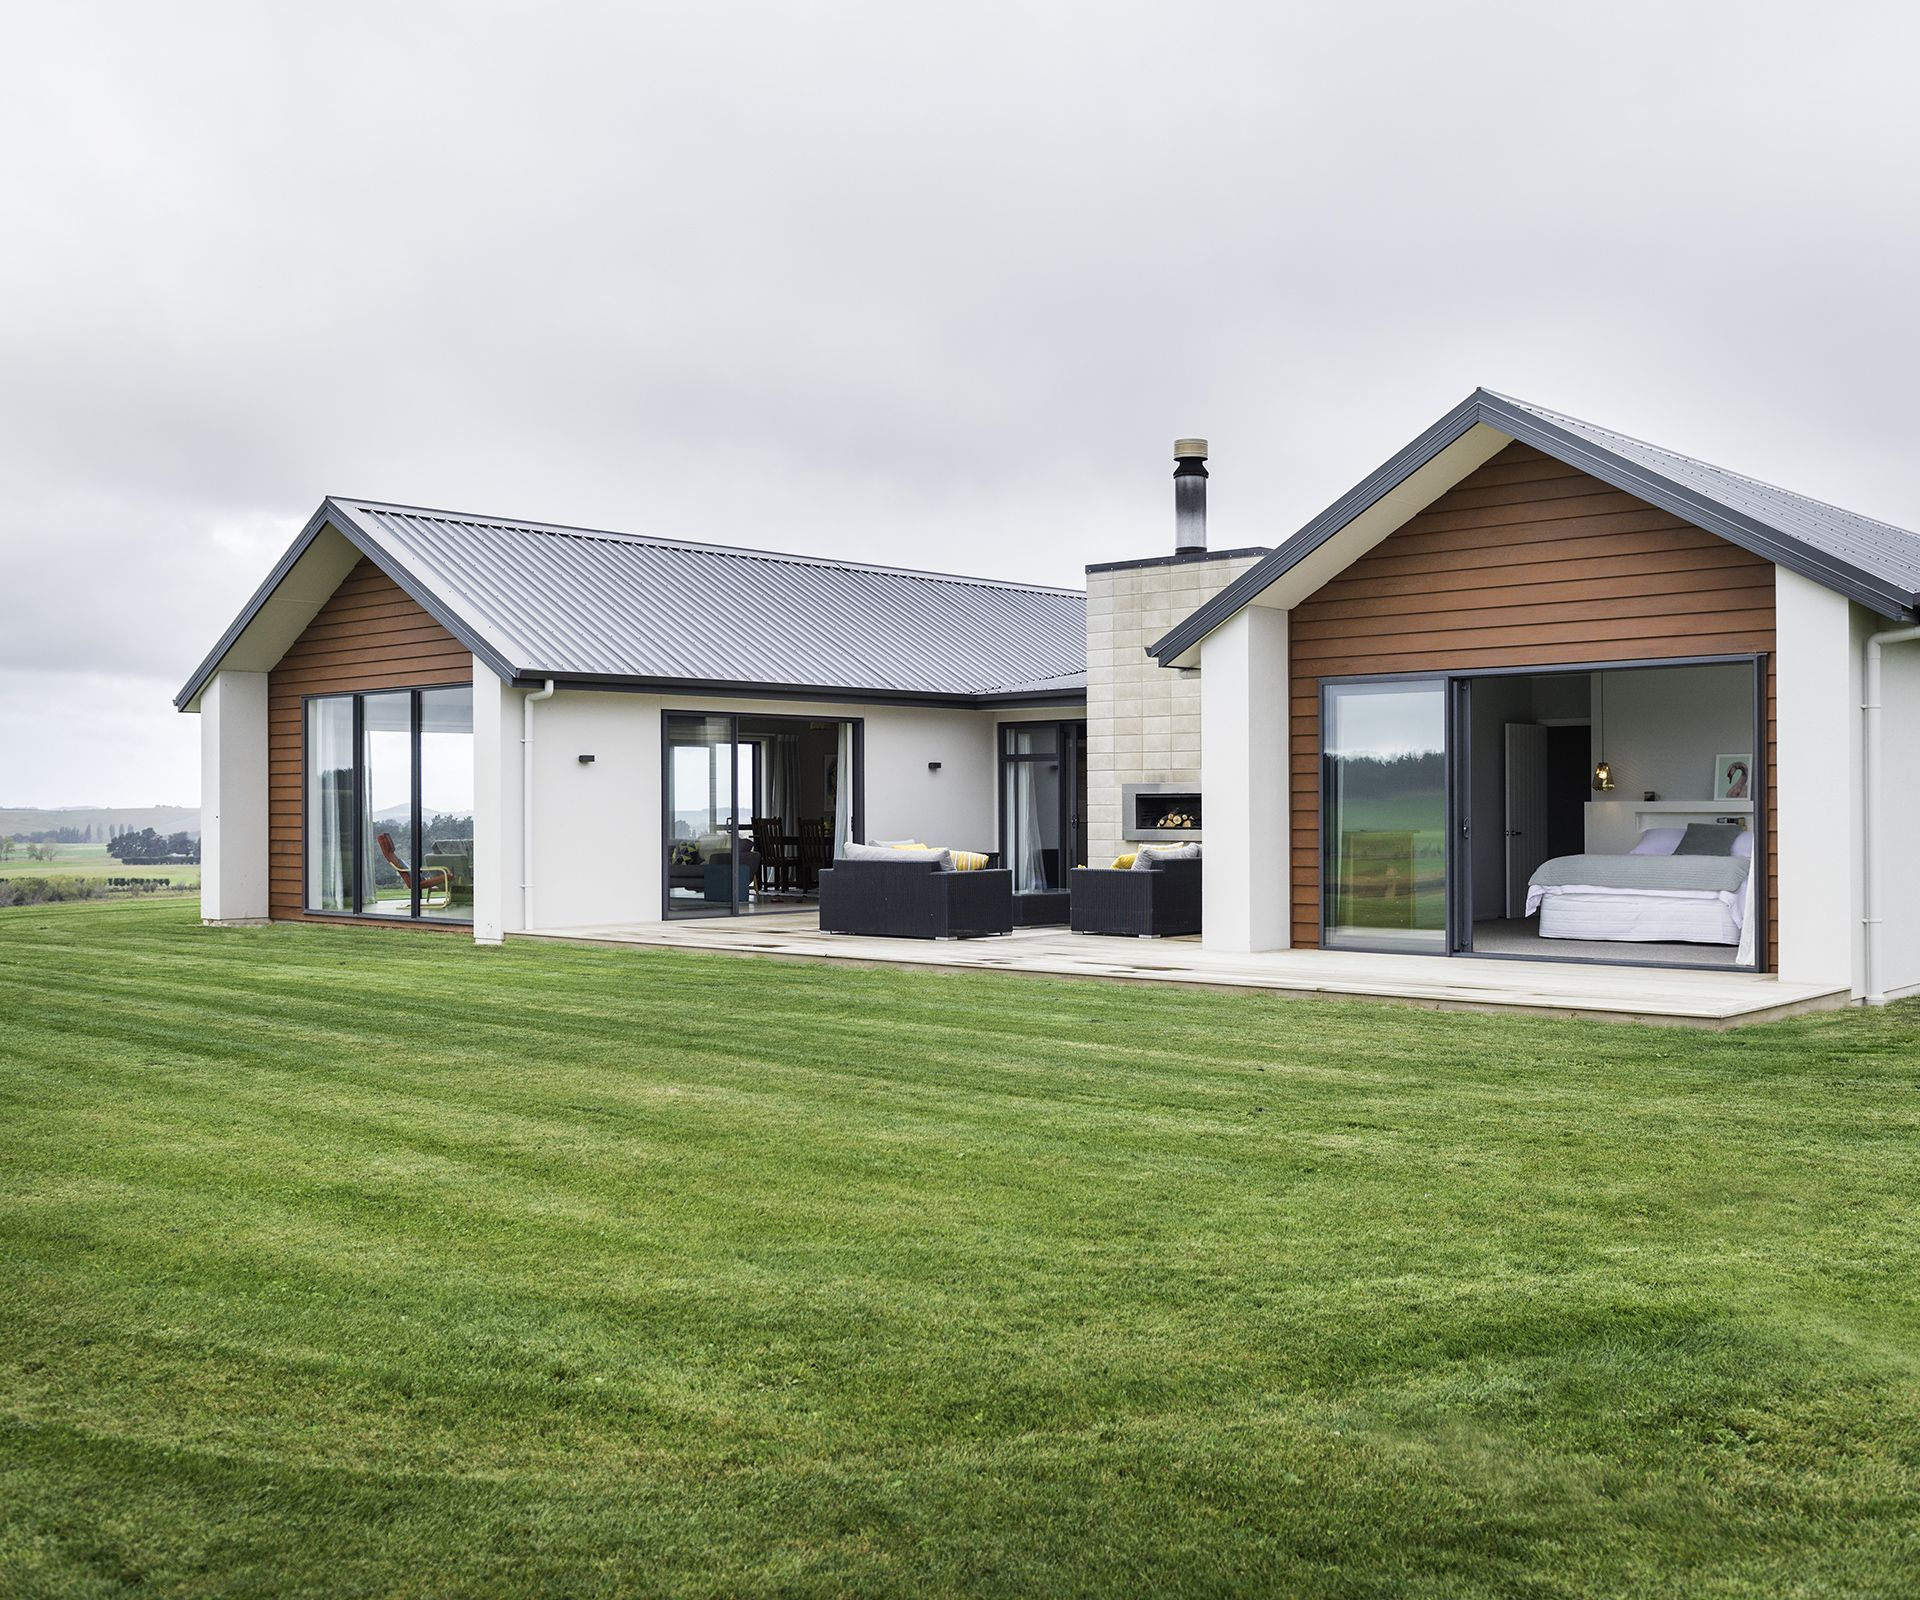 21 African Decorating Ideas For Modern Homes: Cattle Farmers Build Their Dream Home In Rural North Otago